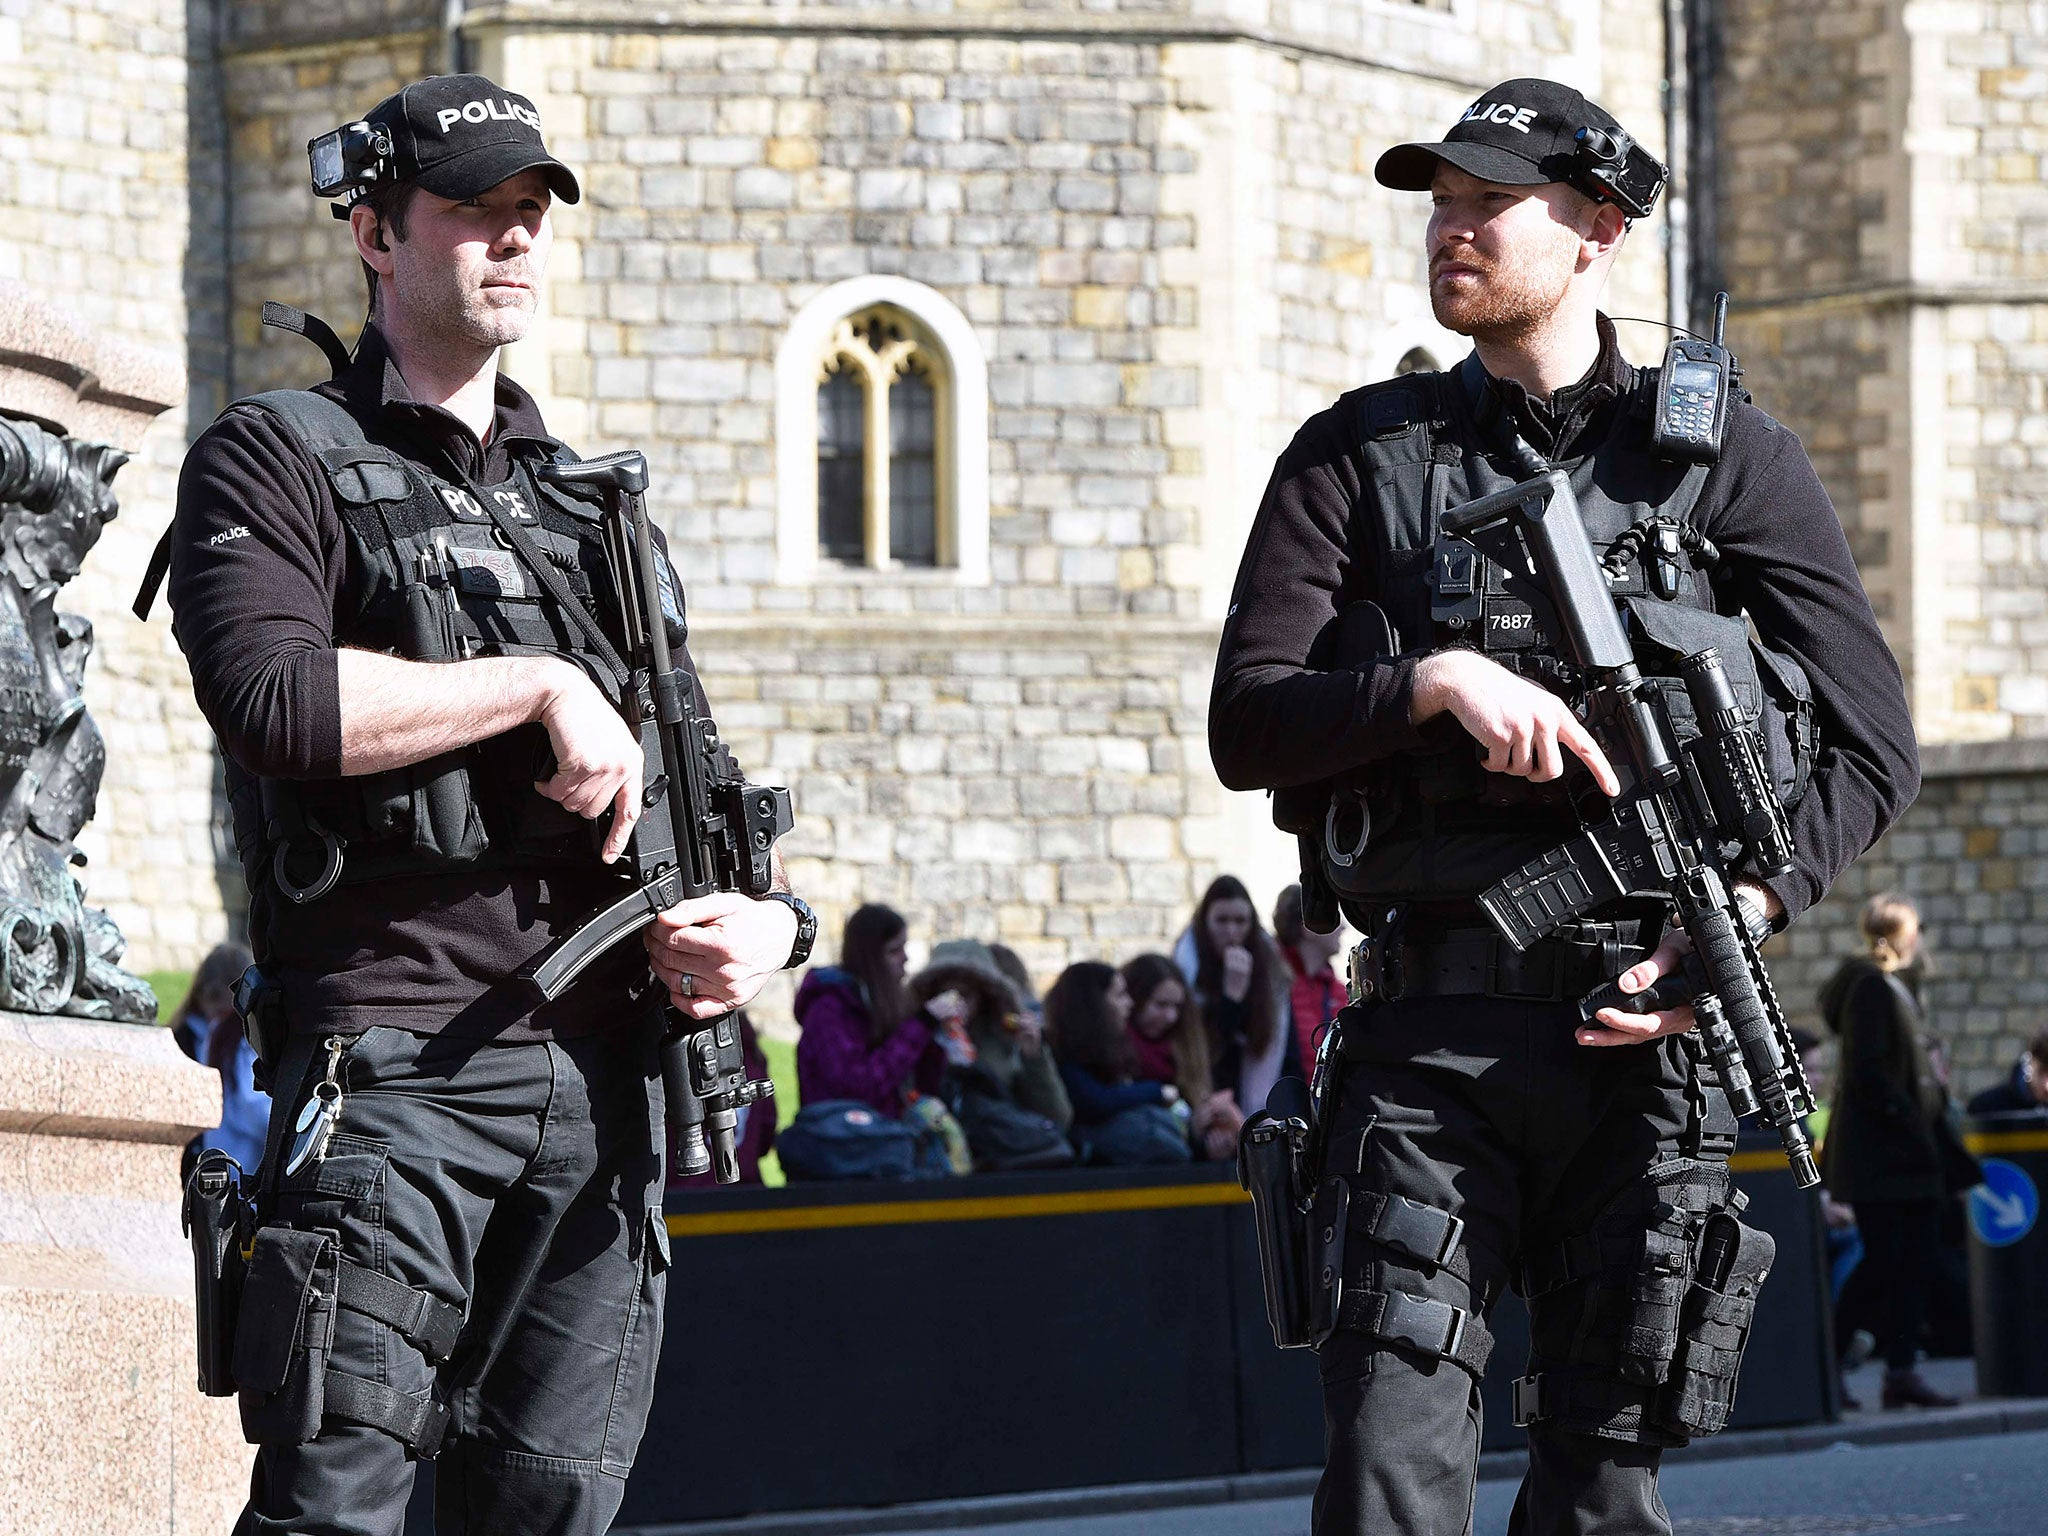 Terror attacks and violent crime drive armed police